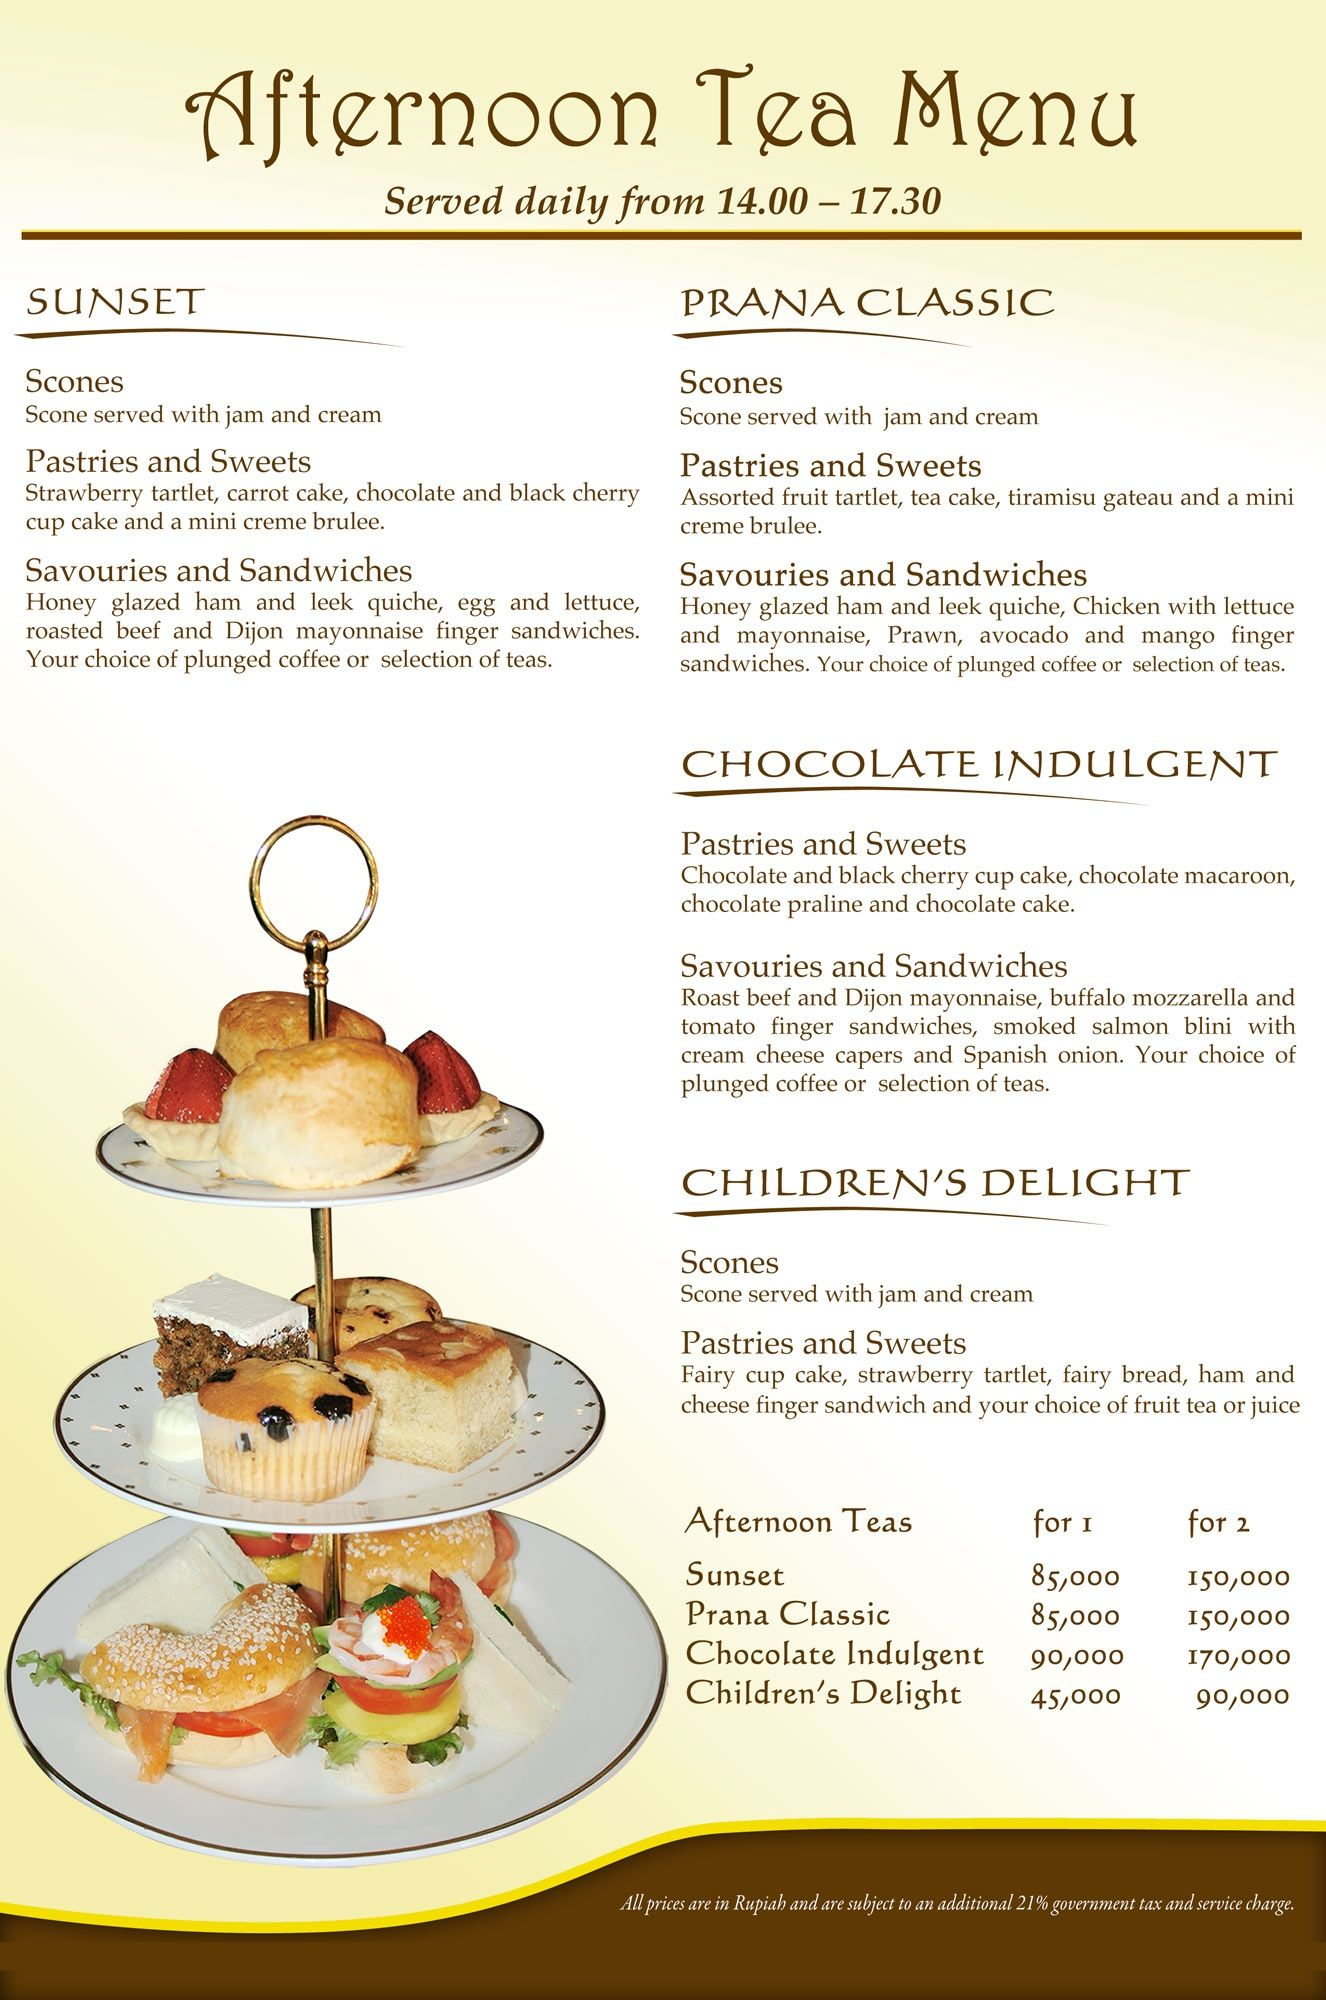 High tea menus and recipes - Have You Experienced Afternoon Tea In Prana Restaurant Yet Our Chef Has Created 4 Magnificent Menus Including A Loose Leaf Tea Selection